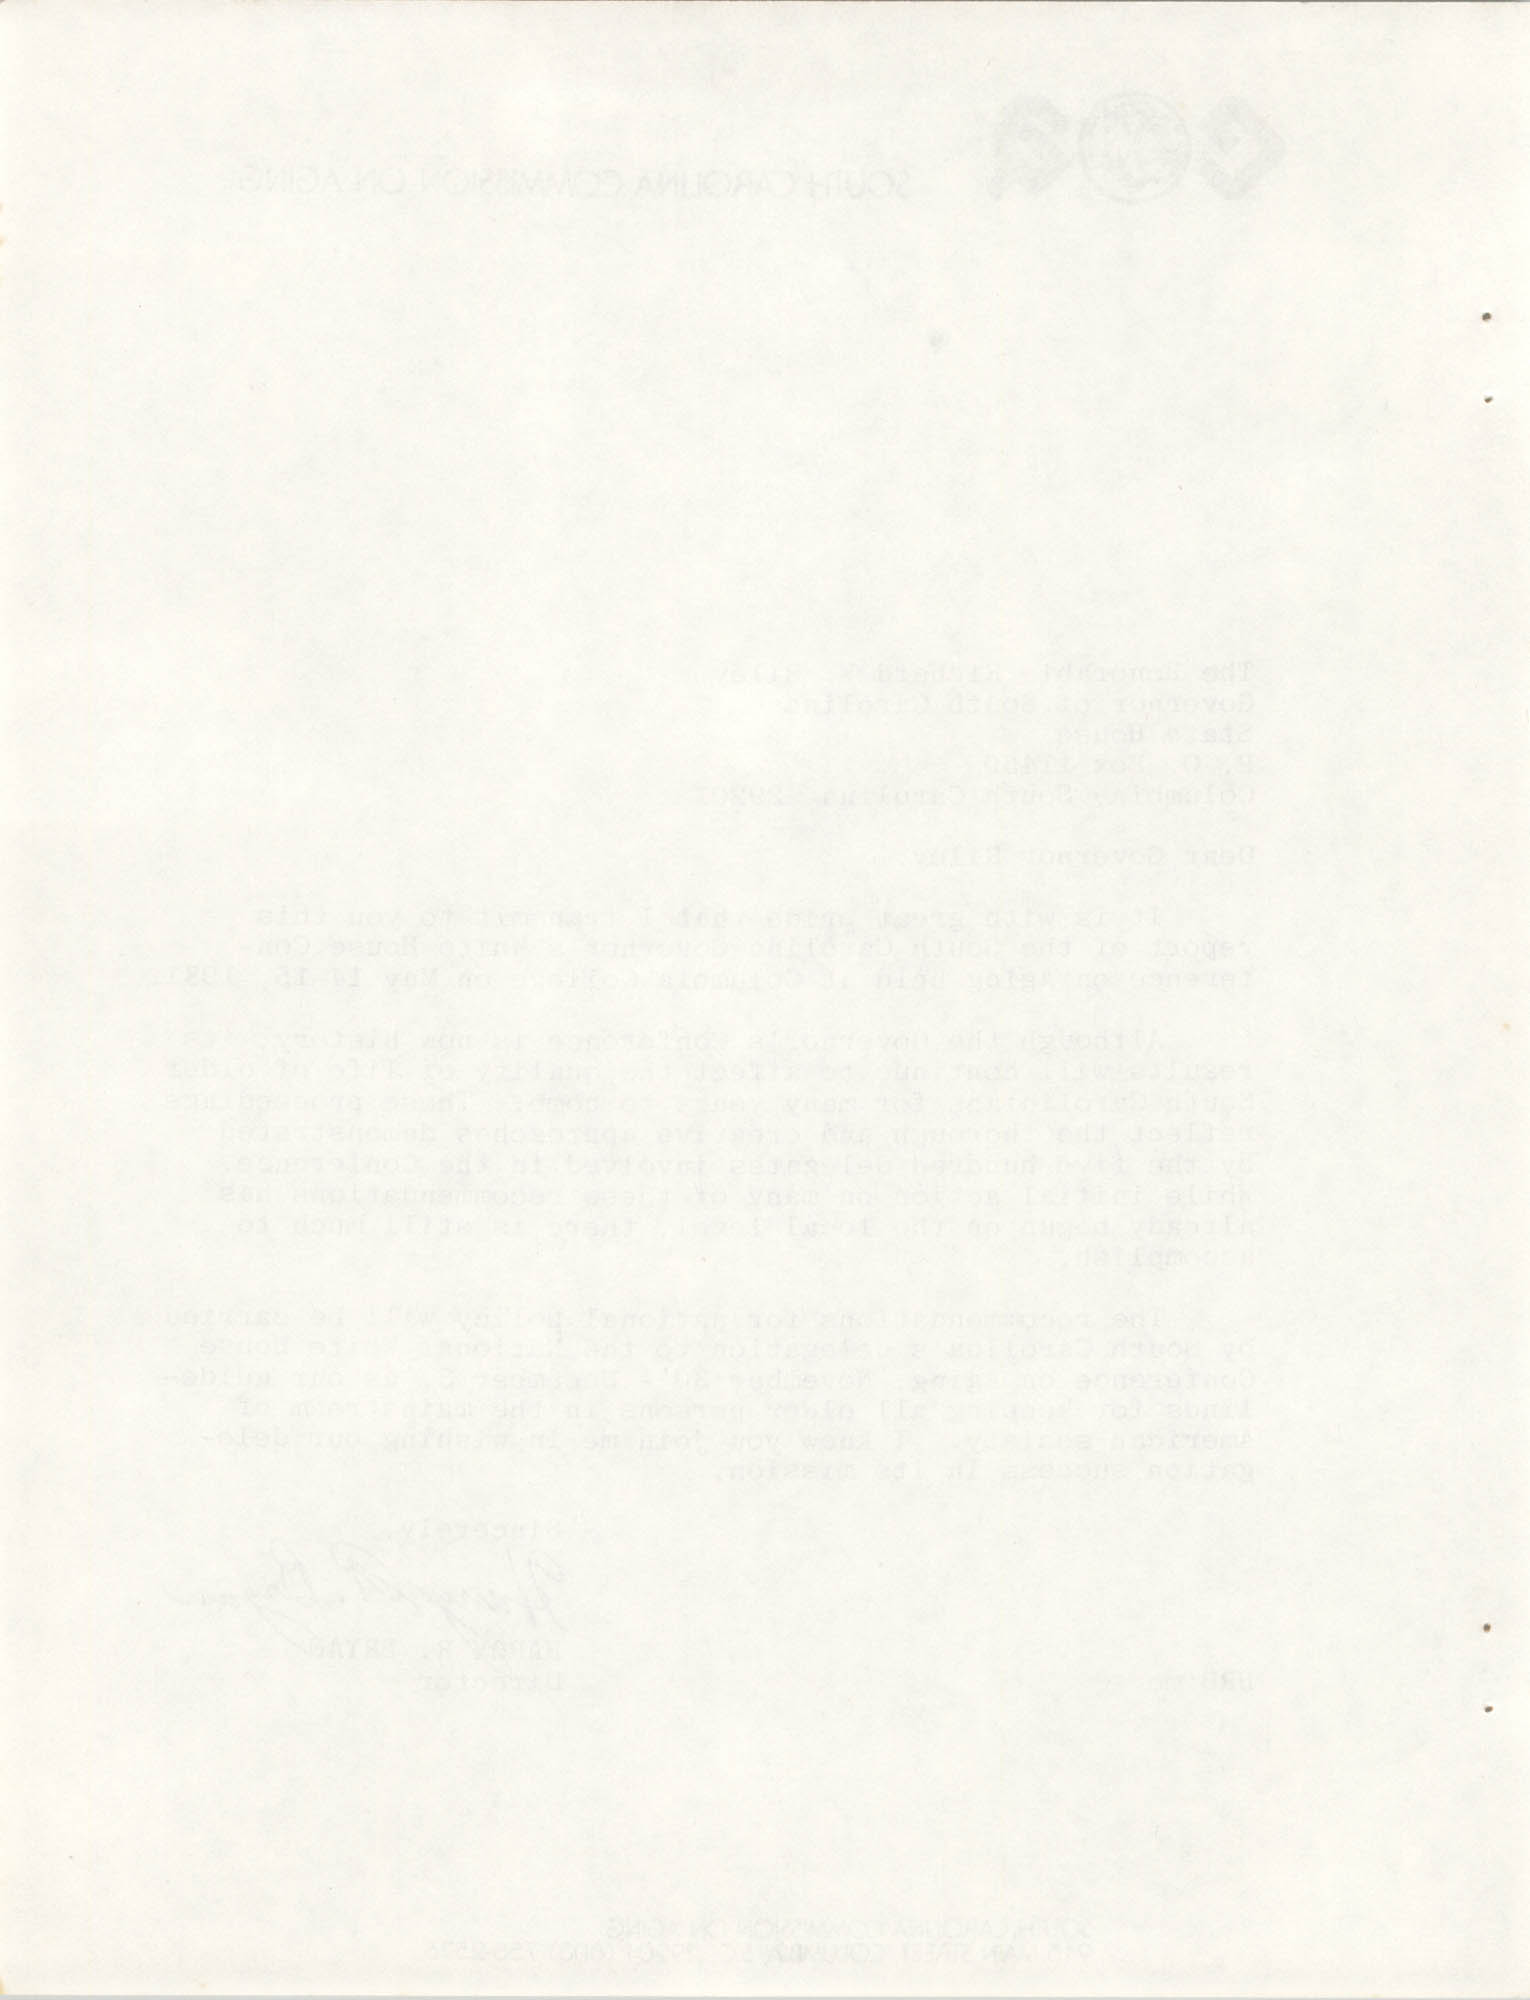 South Carolina Governor's White House Conference on Aging Proceedings, 1981, Blank